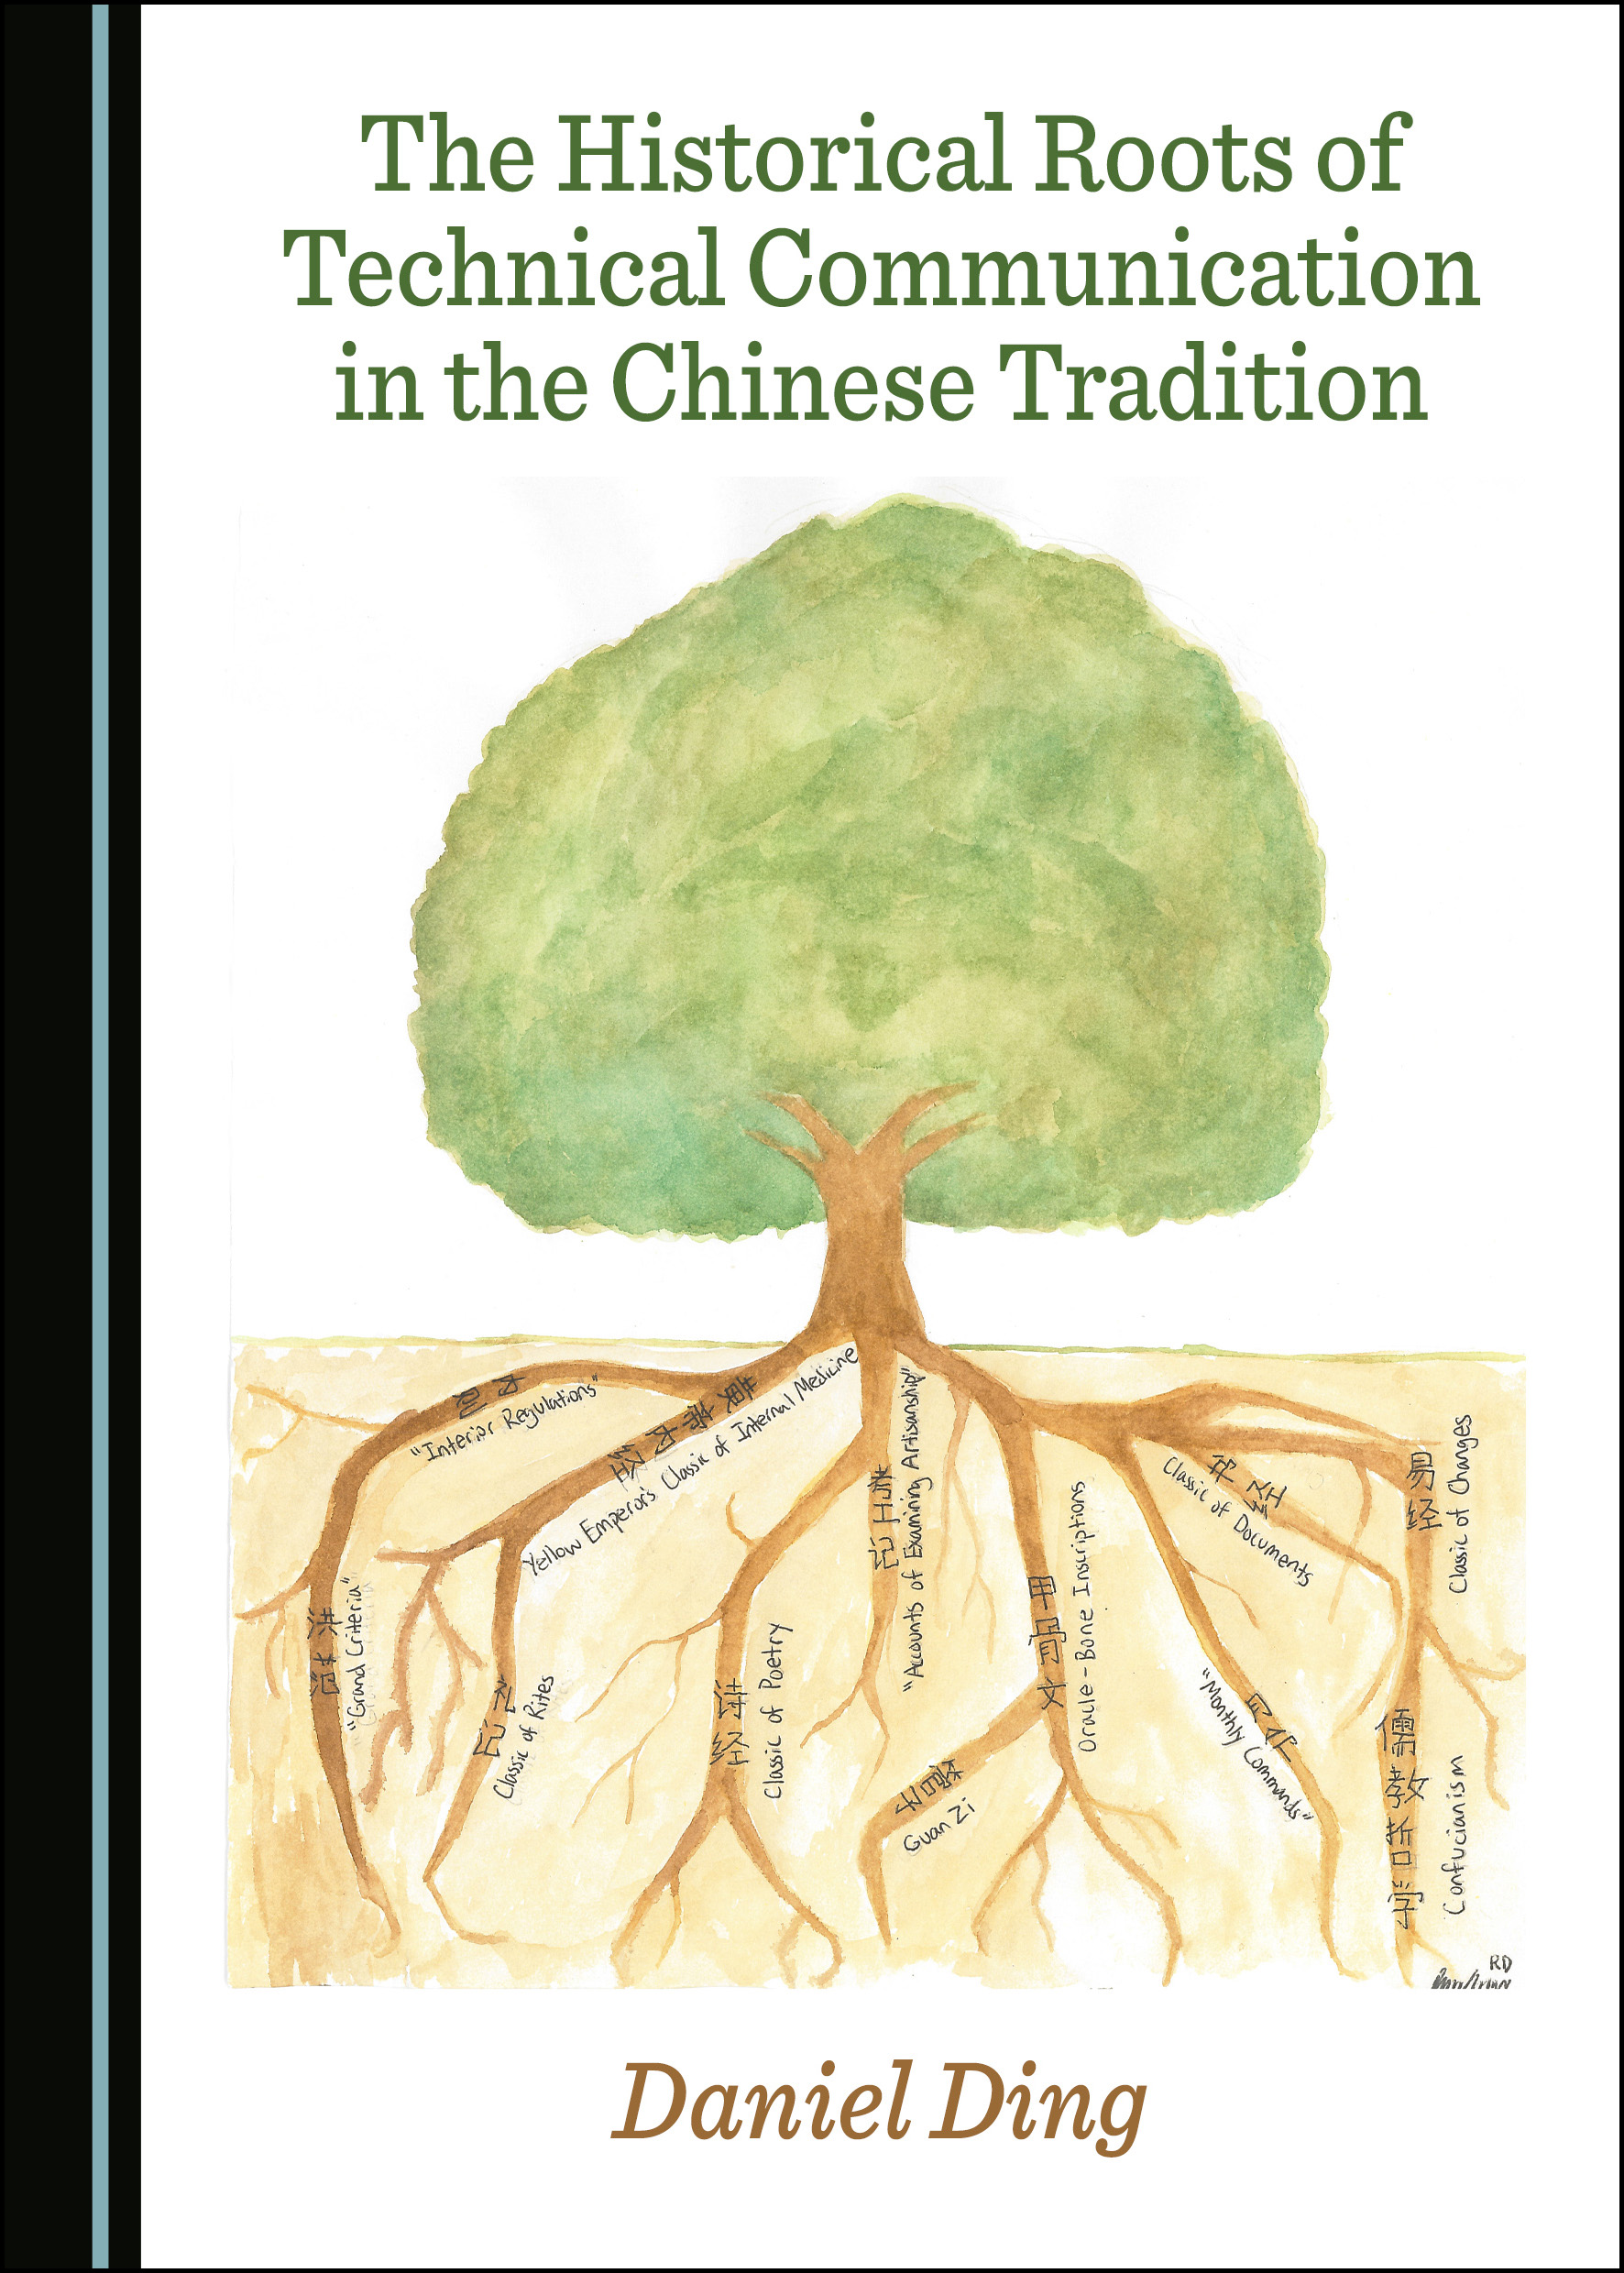 The Historical Roots of Technical Communication in the Chinese Tradition